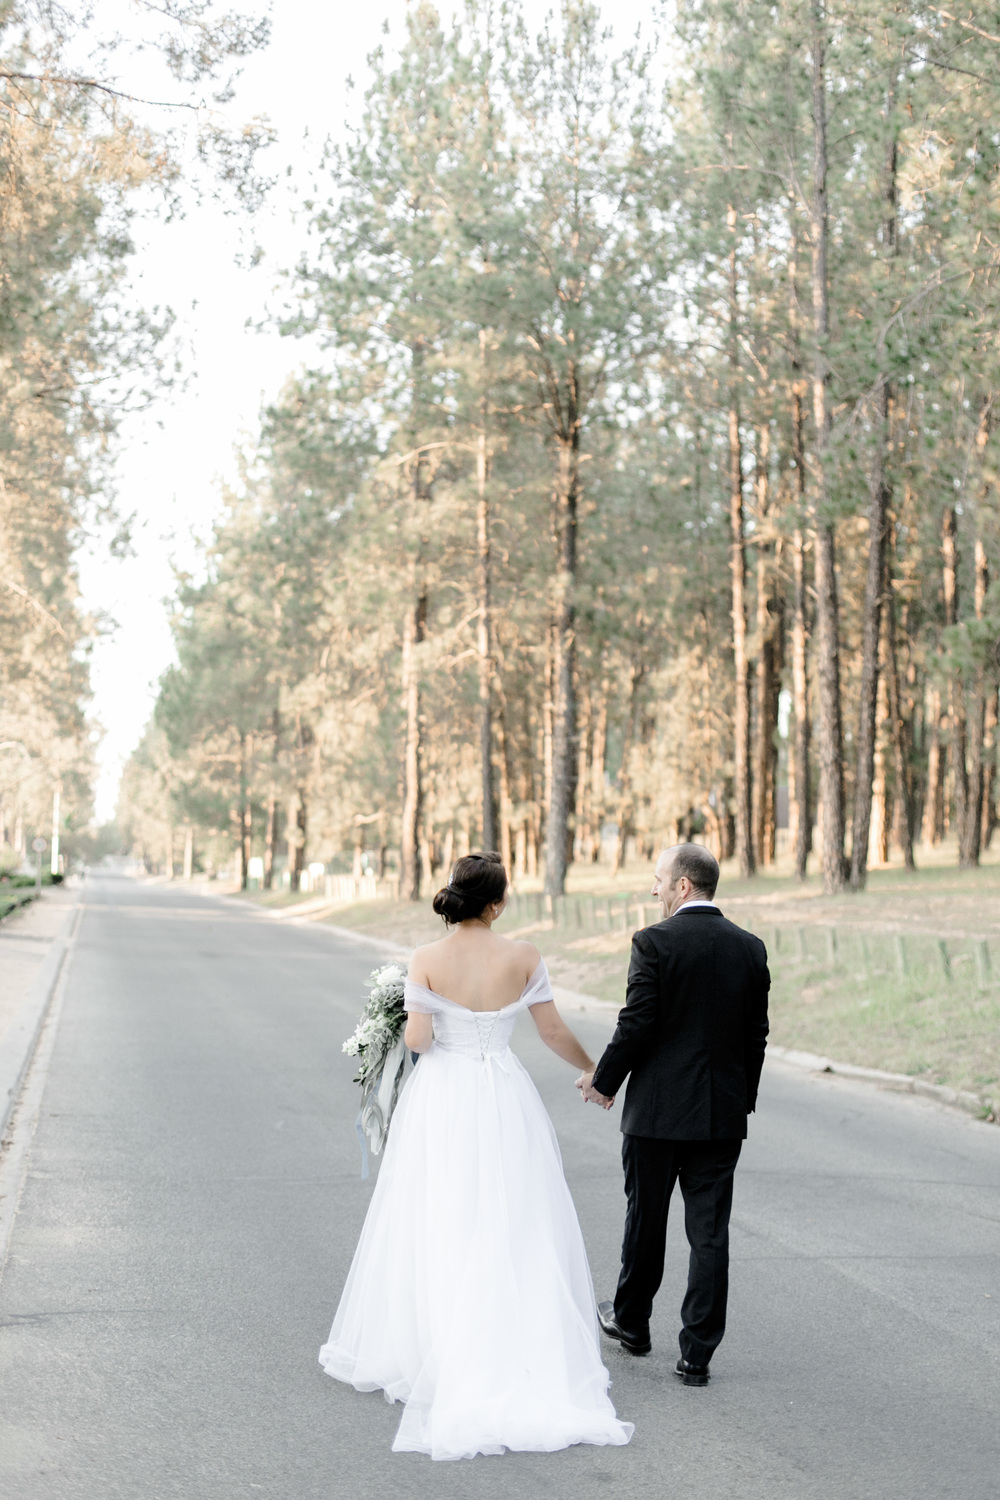 long Meadow johannesburg wedding venue photographer_058.jpg